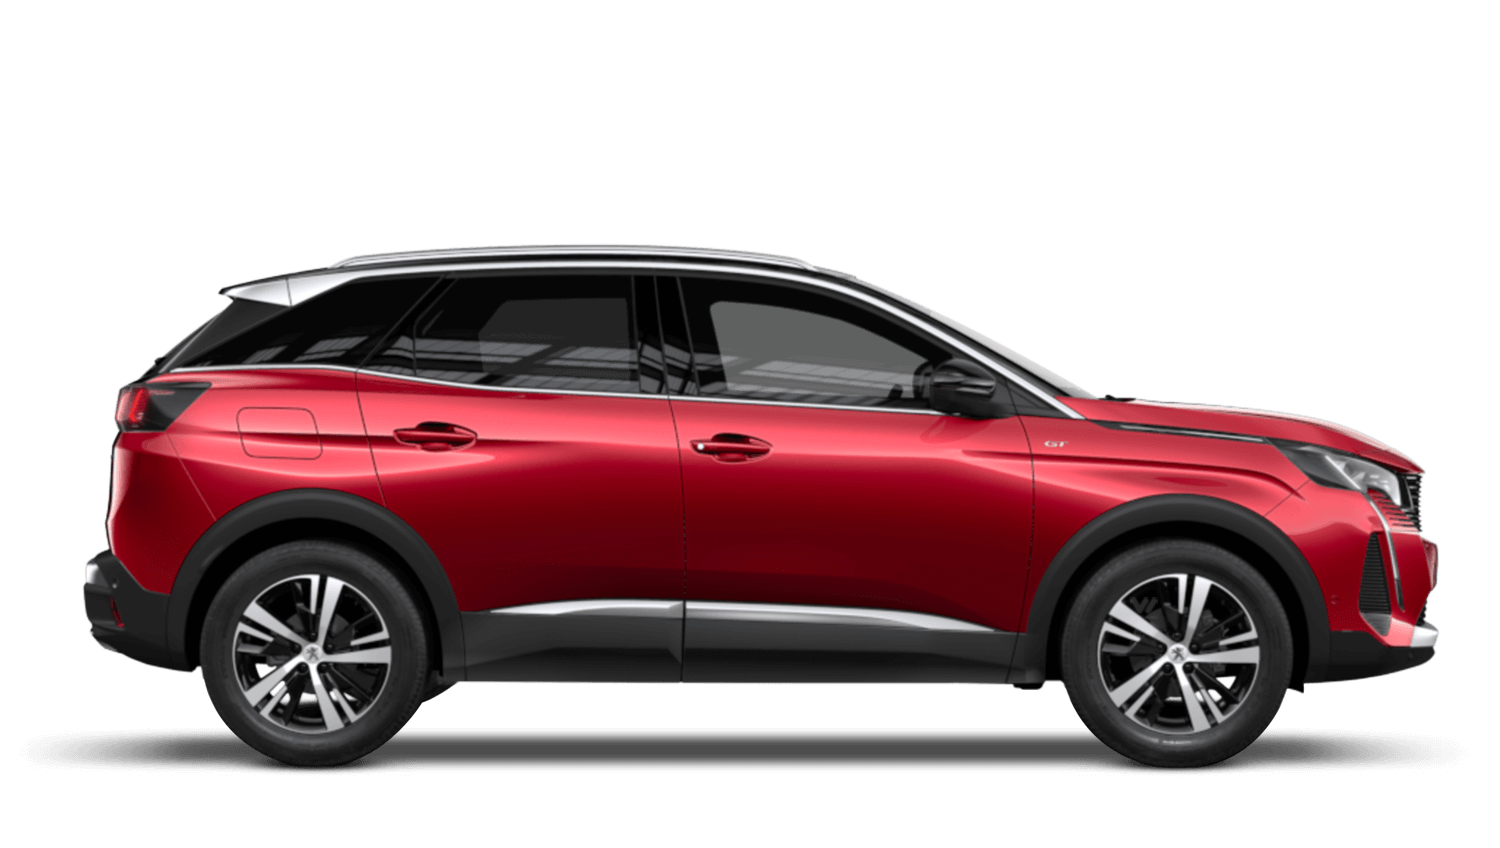 Ultimate Red New Peugeot 3008 SUV Hybrid